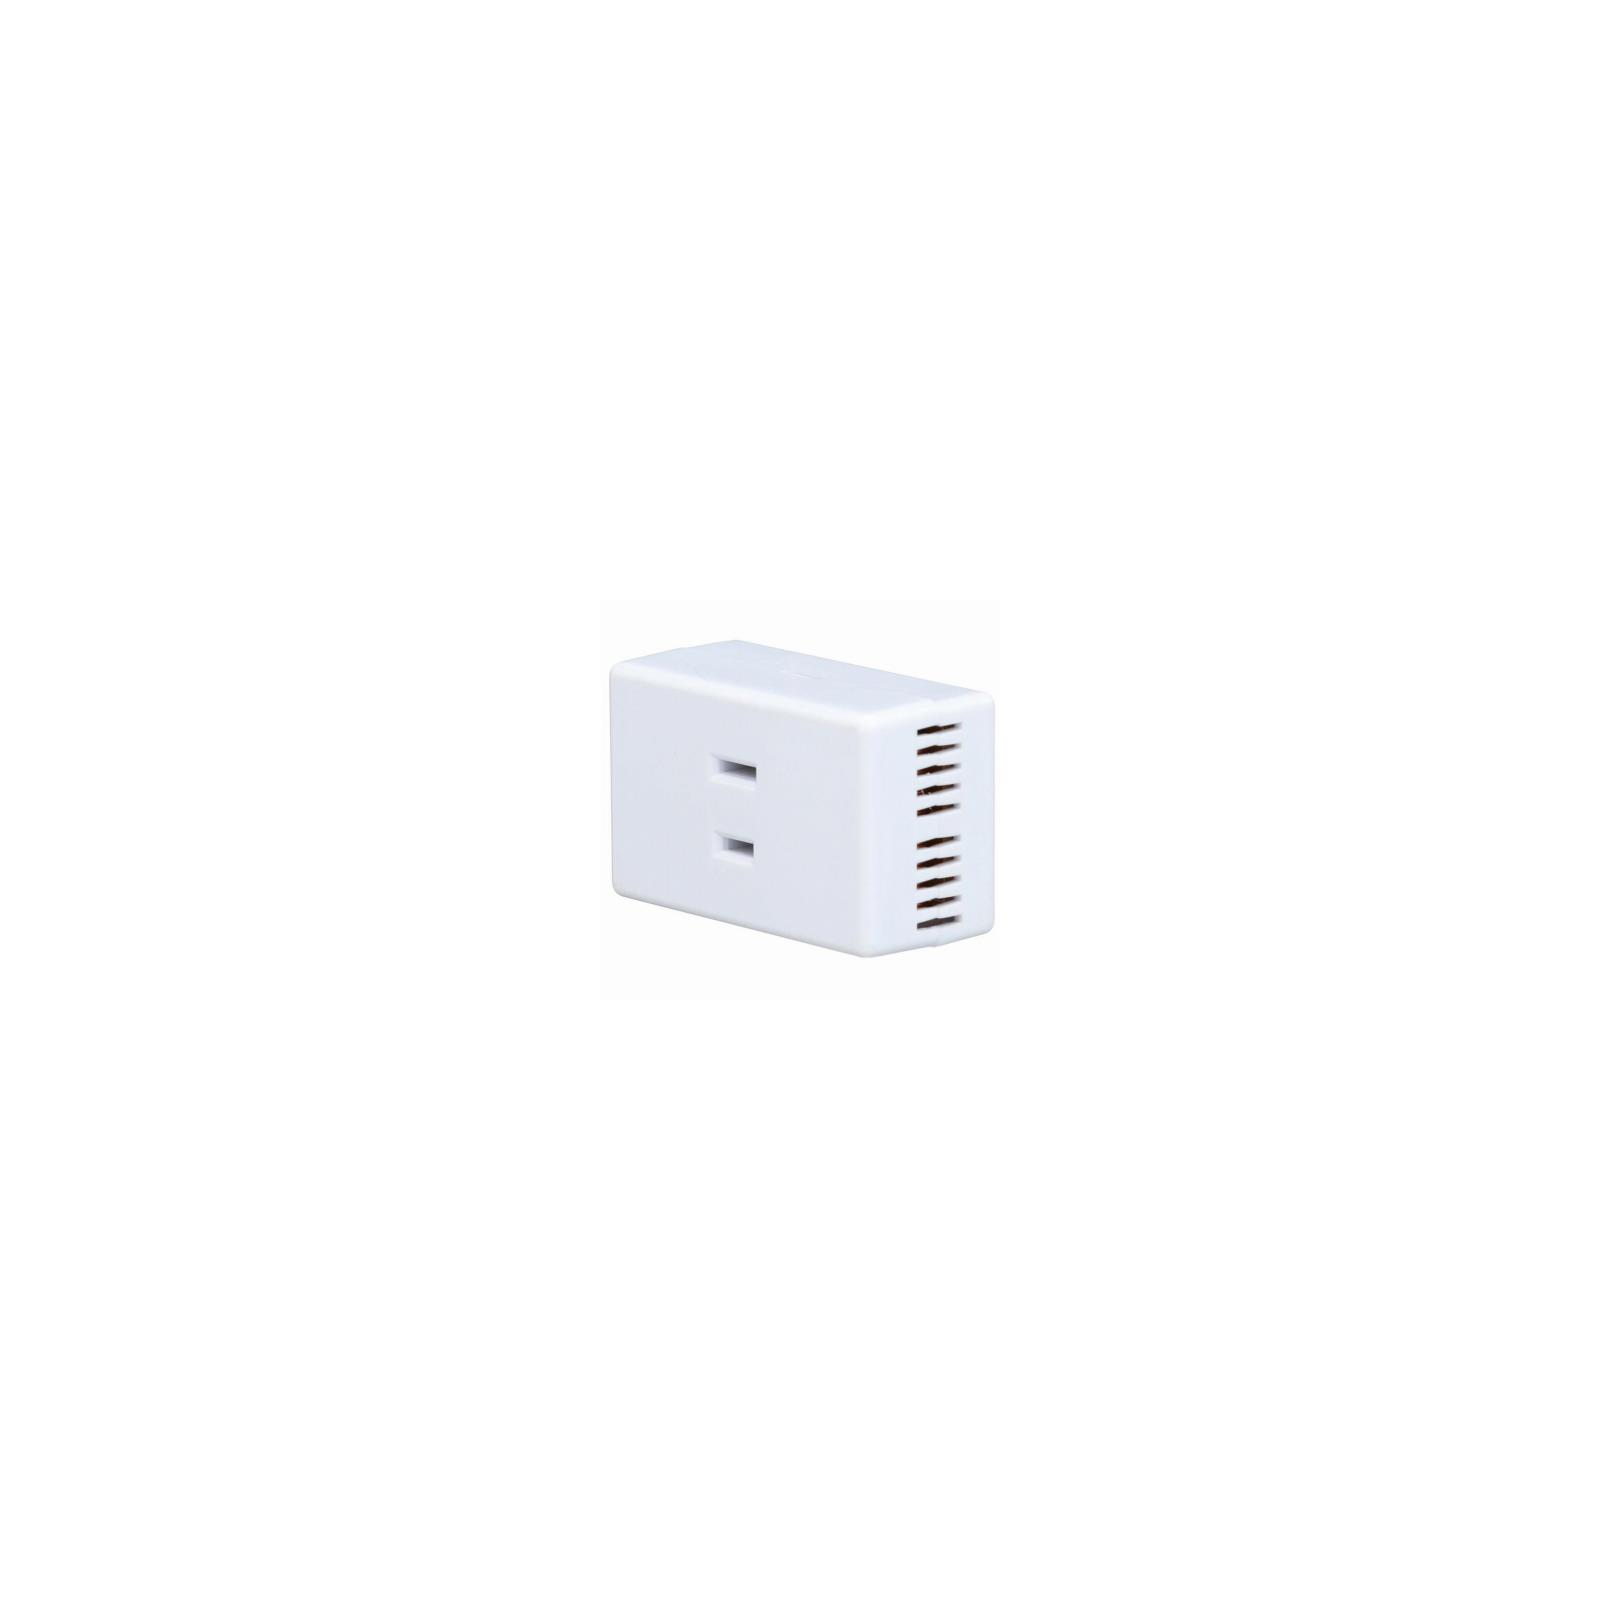 Quantity 1 6004B 200W Plug-In Touch Dimmer